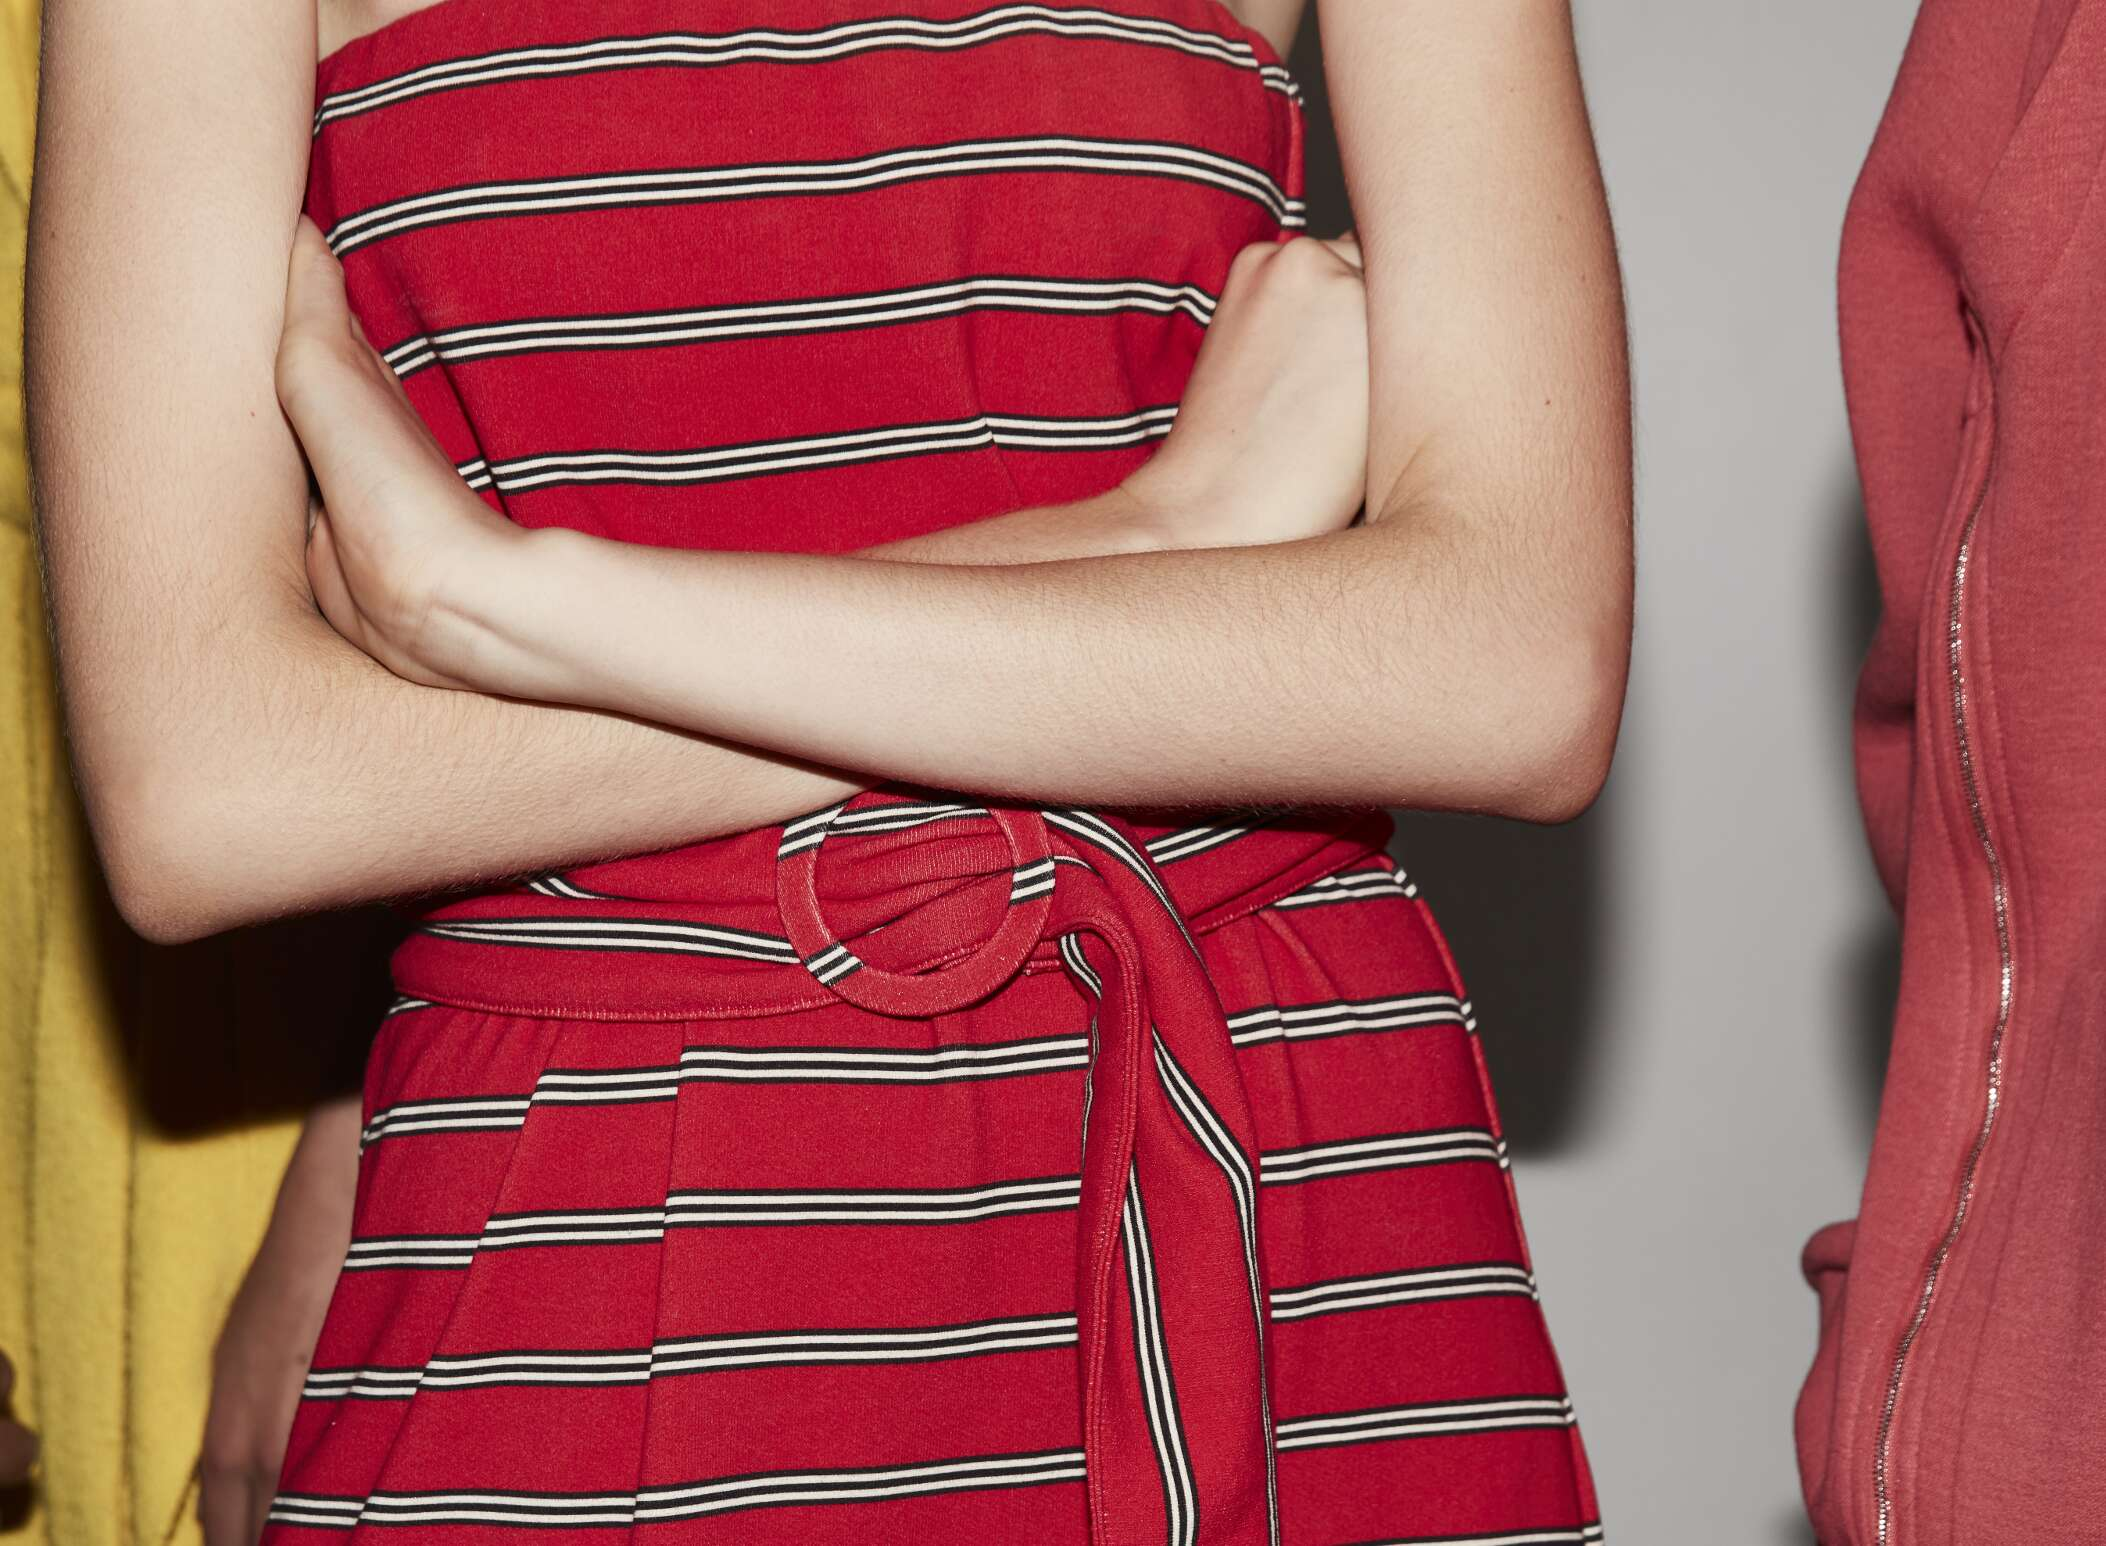 Backstage Lacoste Fashion Show